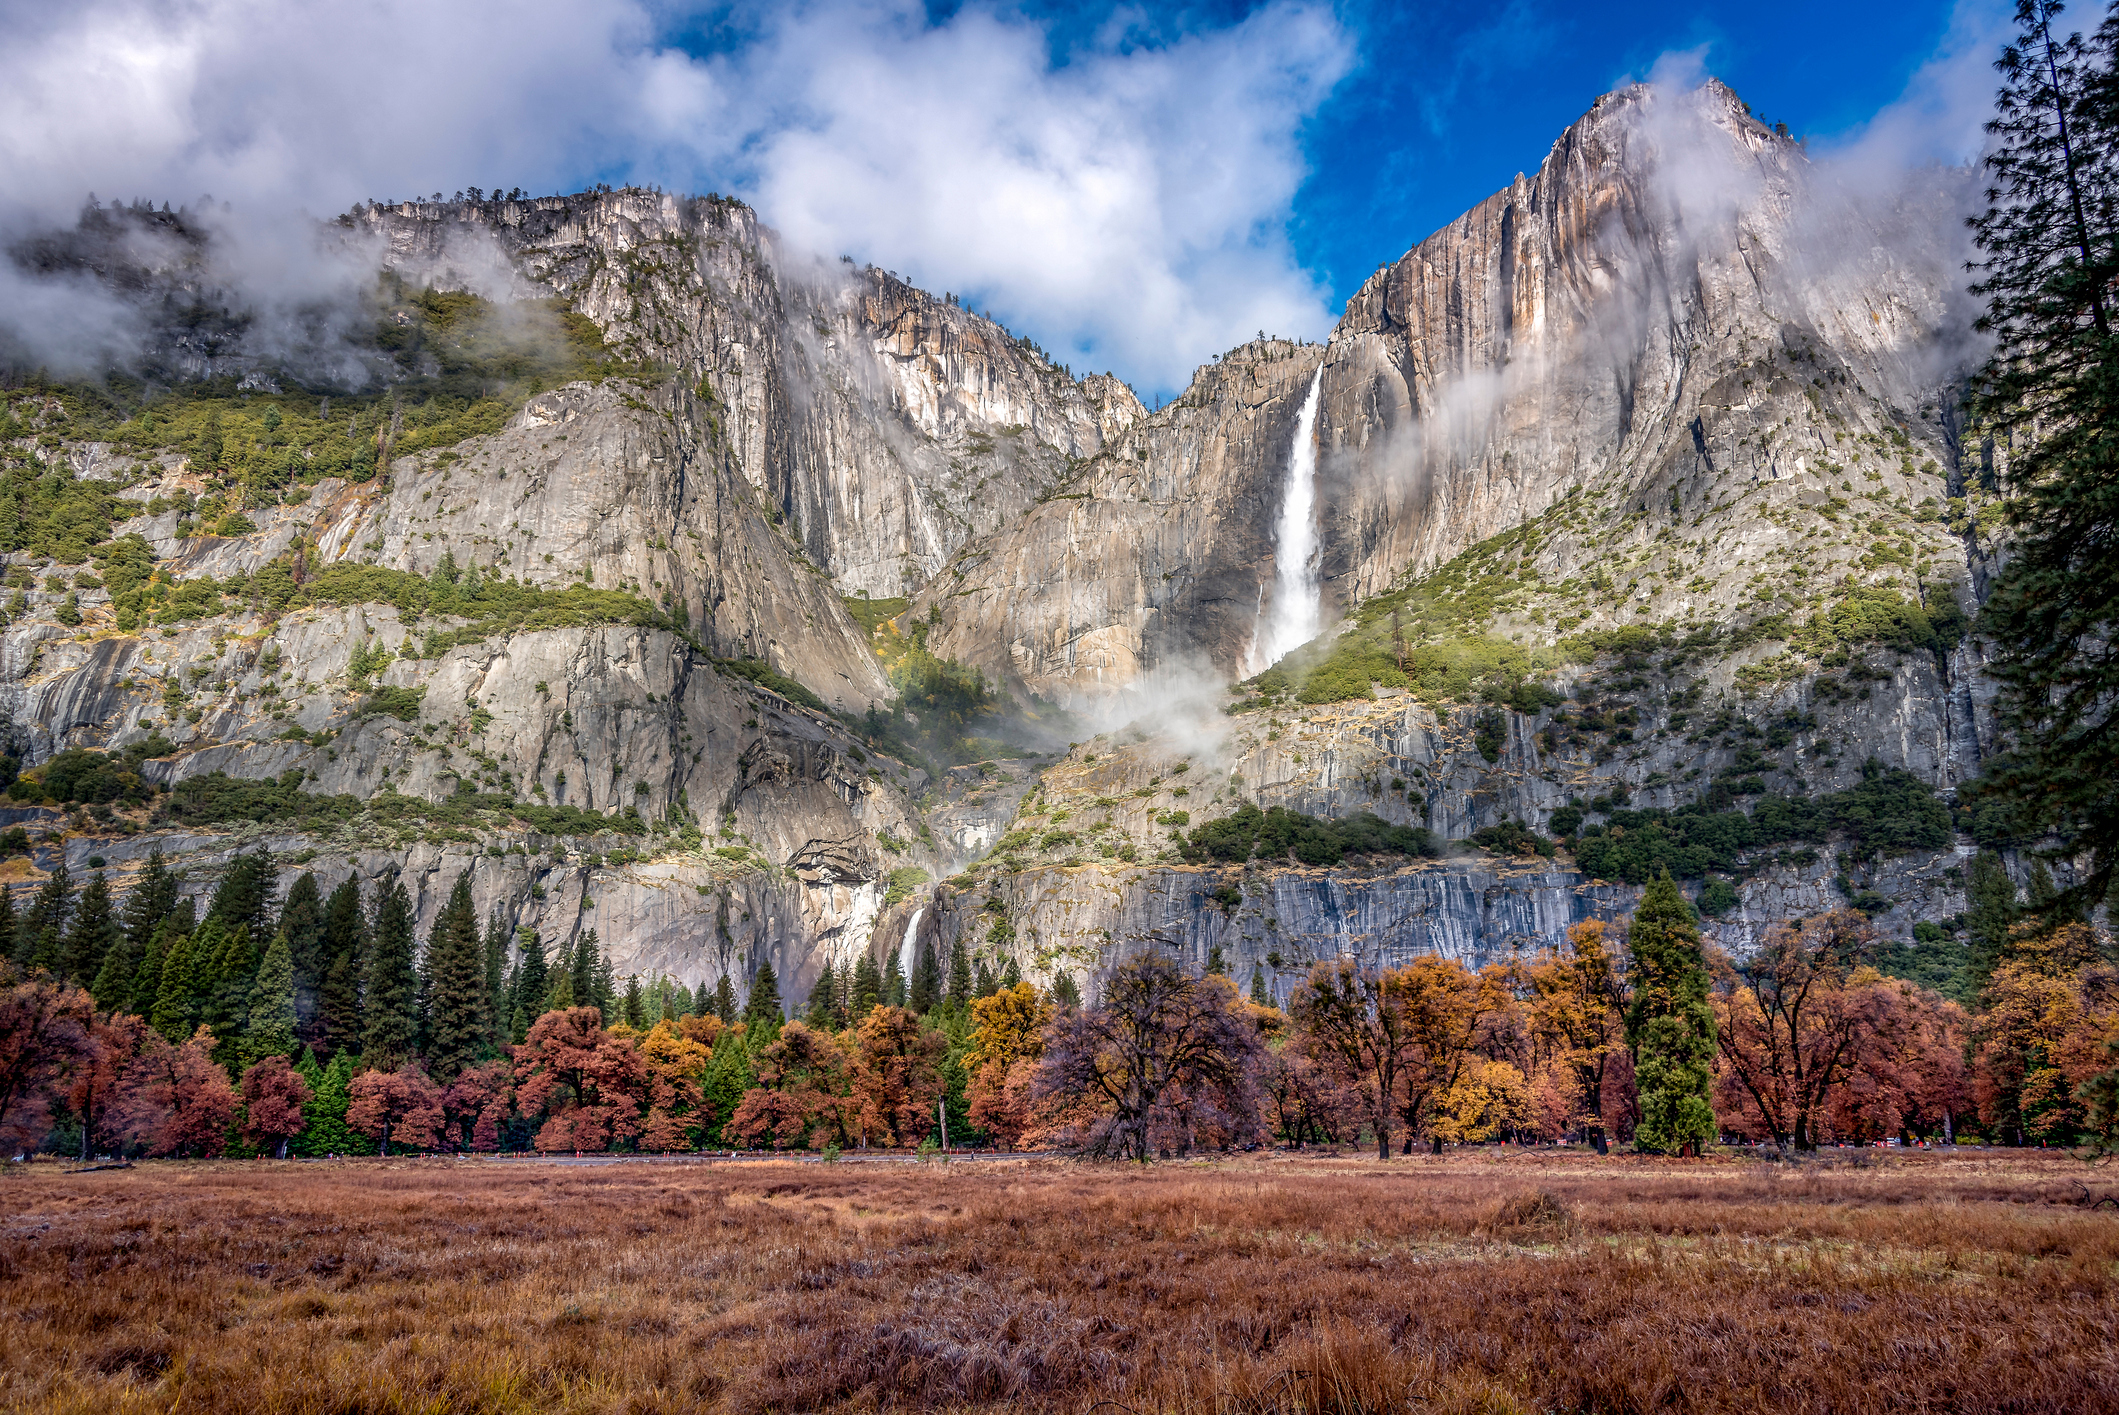 Why you should visit Yosemite even if you're not an outdoorsy person